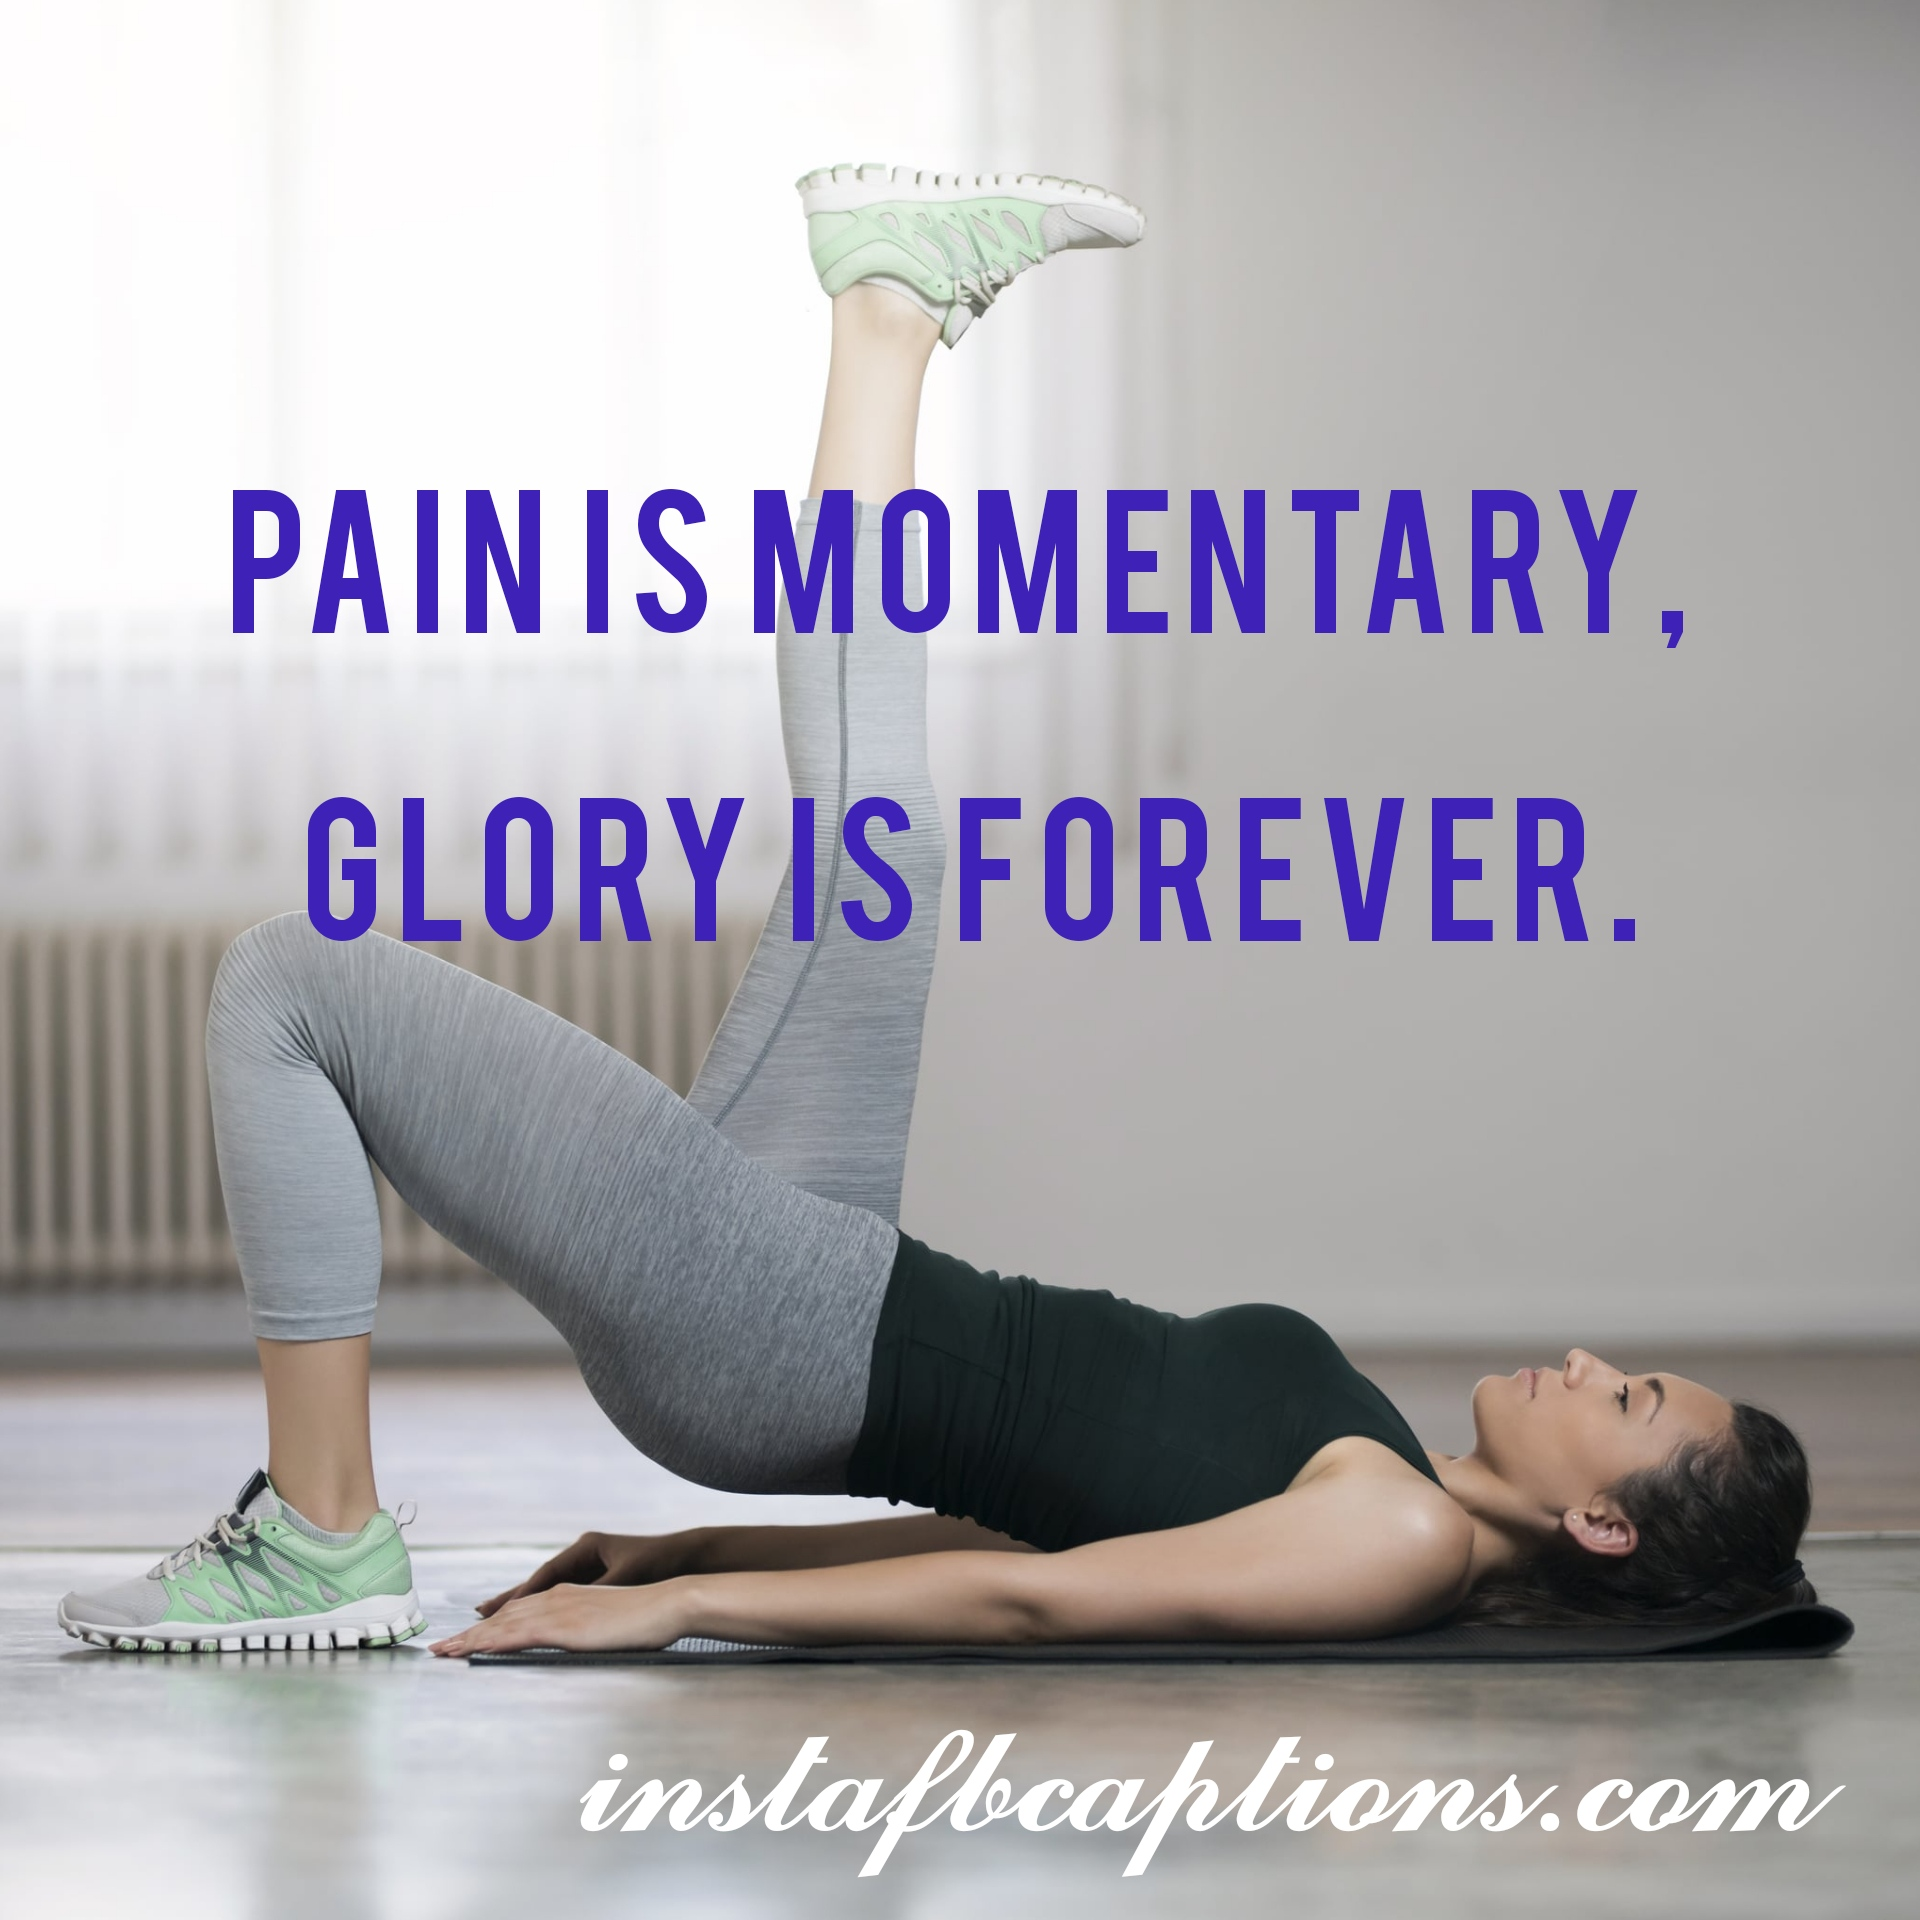 Pain Is Momentary, Glory Is Forever  - Pain is momentary Glory is forever - Fitness Instagram caption||(Gym Goals Home Workout)